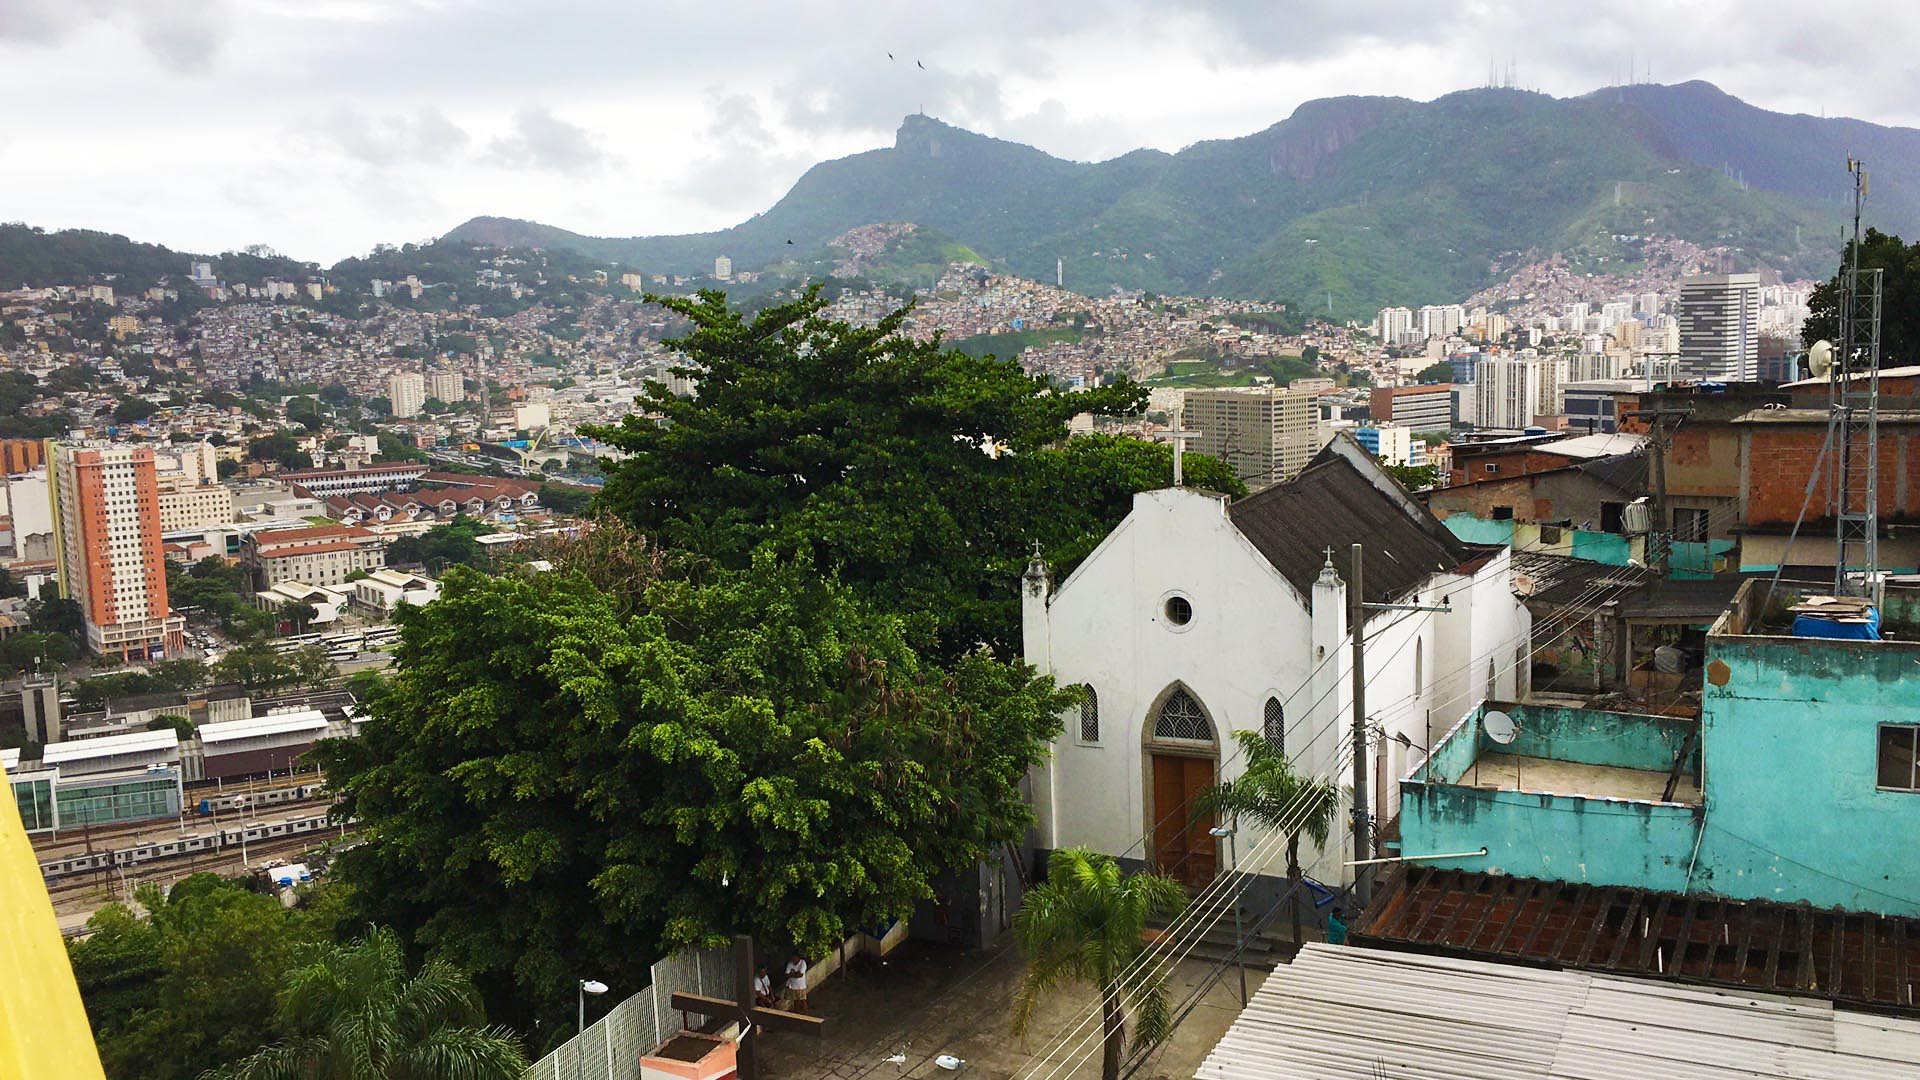 """The view from """" Casa Amarela"""" in the favela Providencia, one of the oldest favelas in Rio De Janeiro. The house is a community centre built by french artist JR in 2009."""